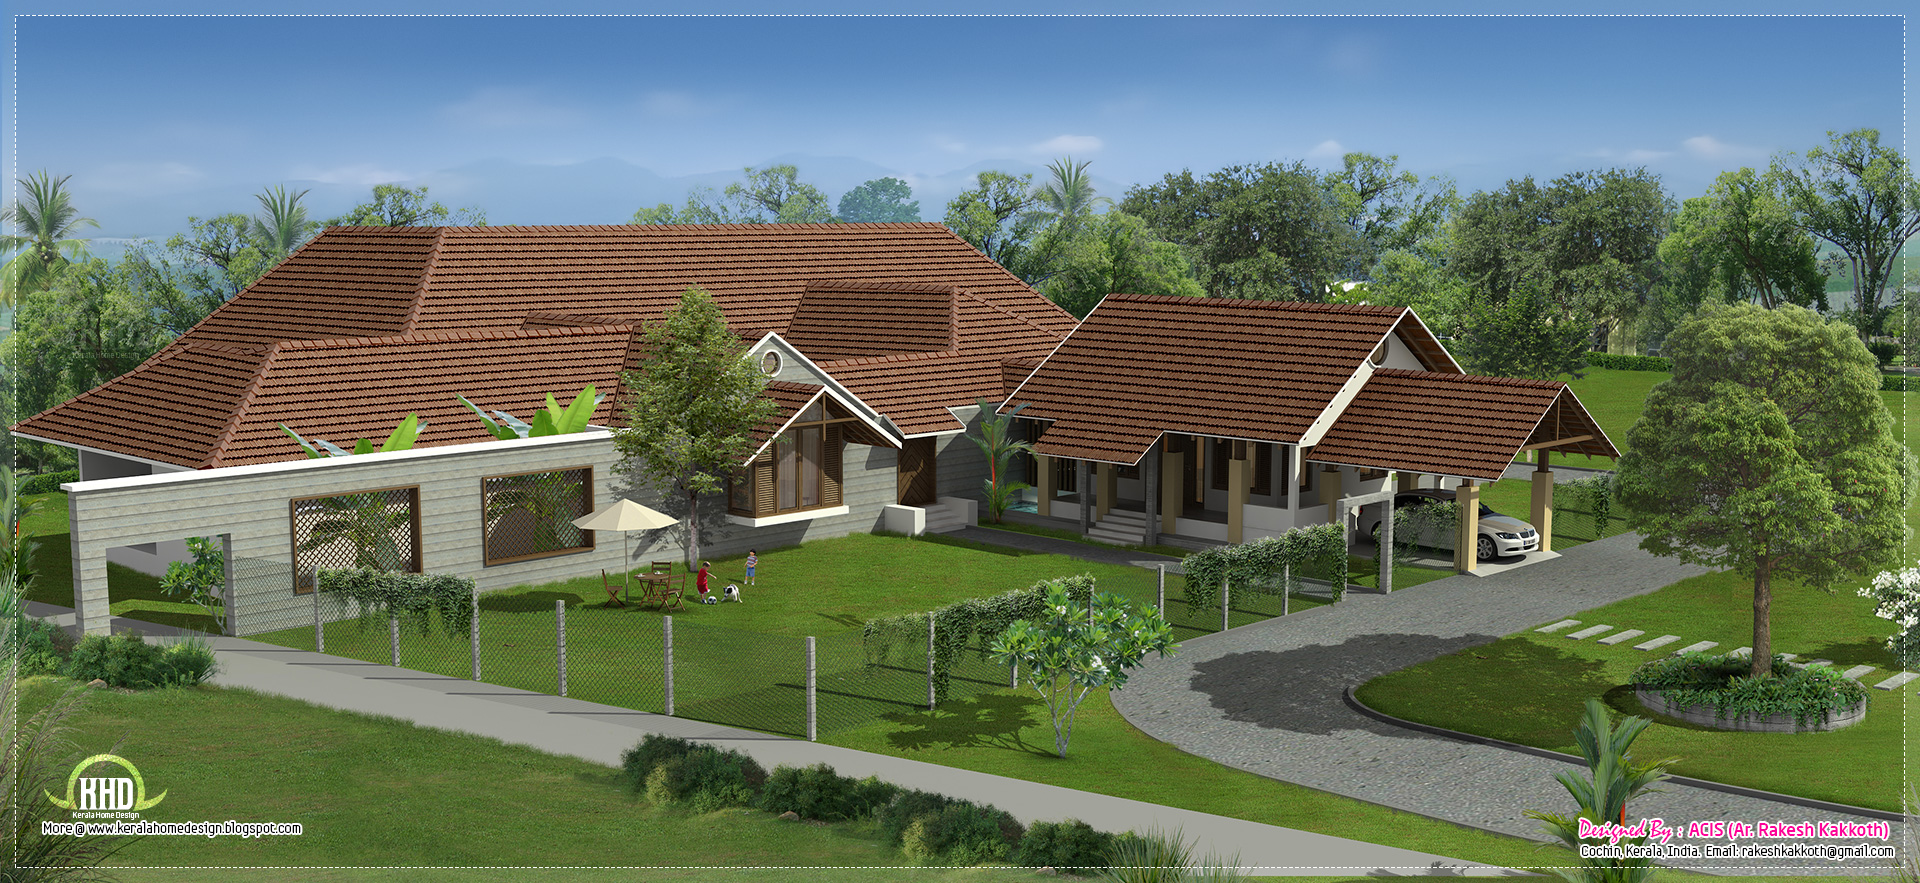 Luxury bungalow exterior design kerala home design and for Bungalow style home plans